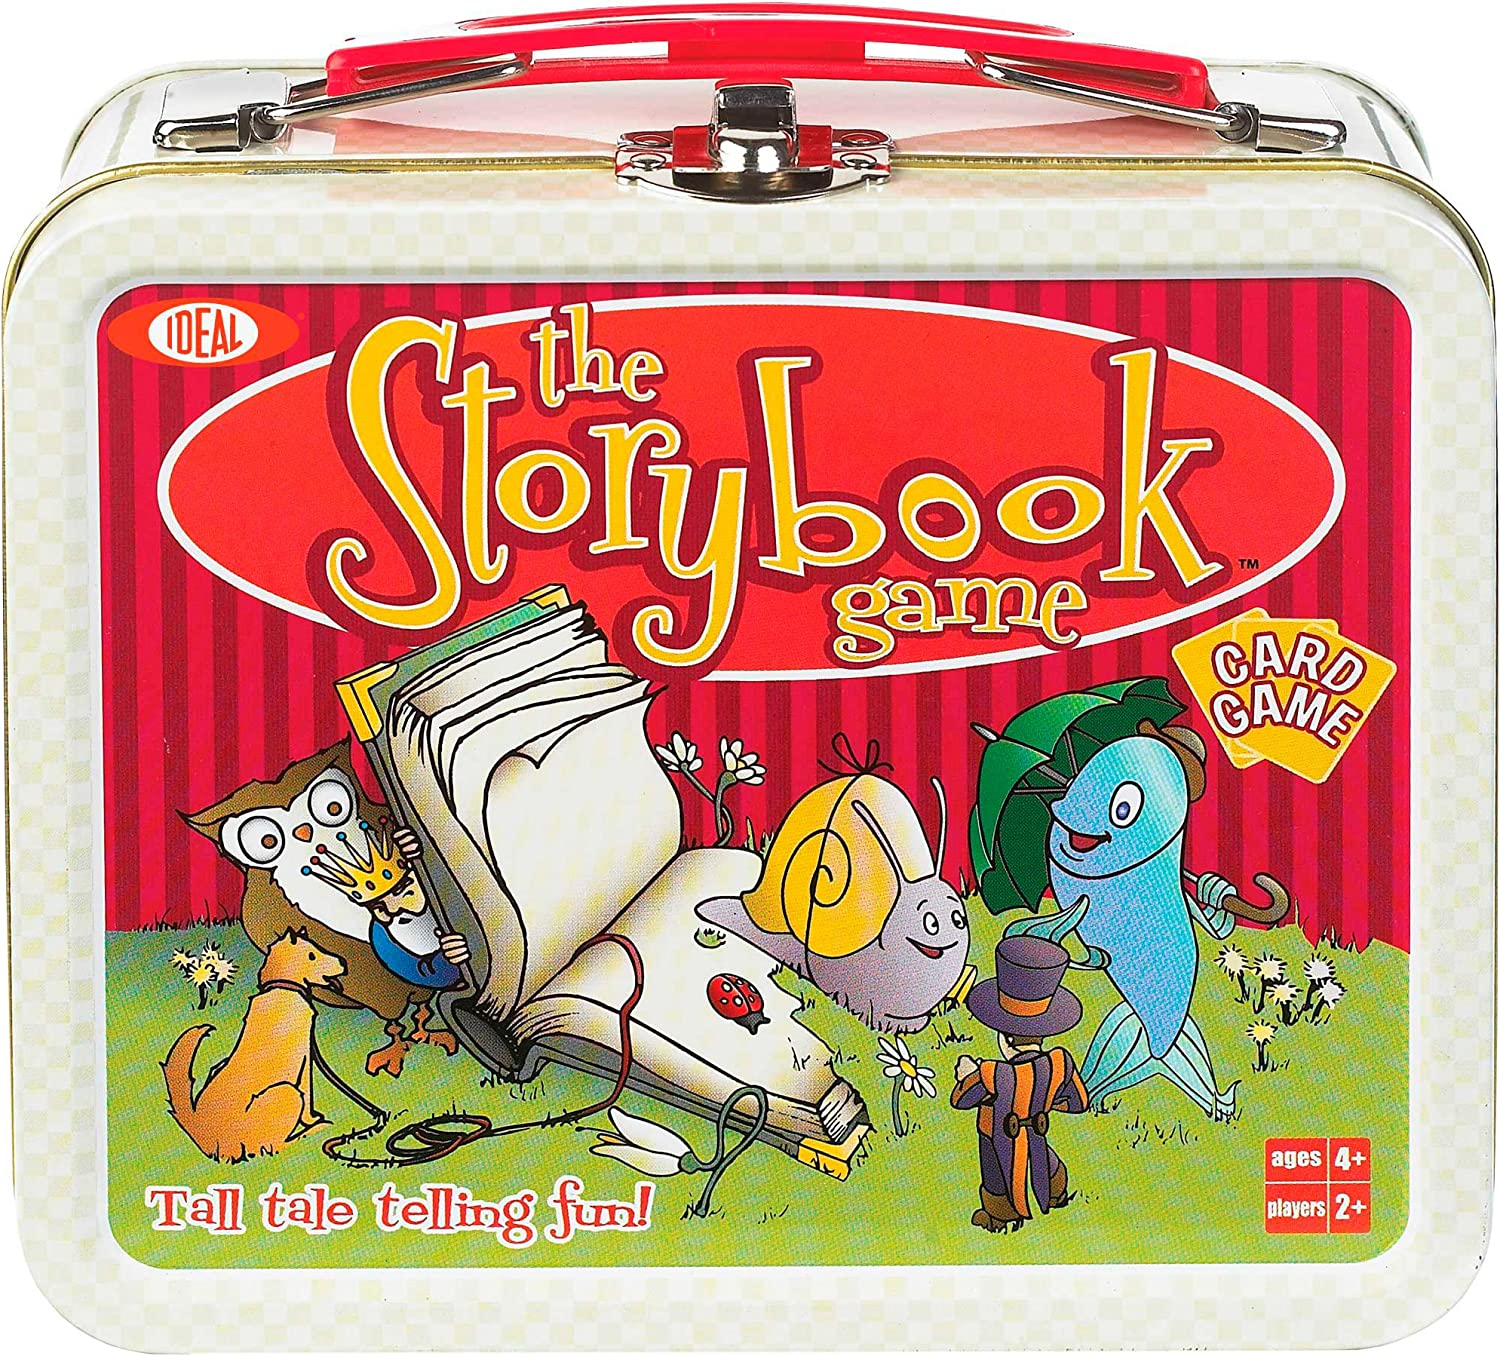 Ideal The Storybook Memory Card Game with Mini Collectible Tin Lunch Box Storage Container, 54colorfully Illustrated Cards